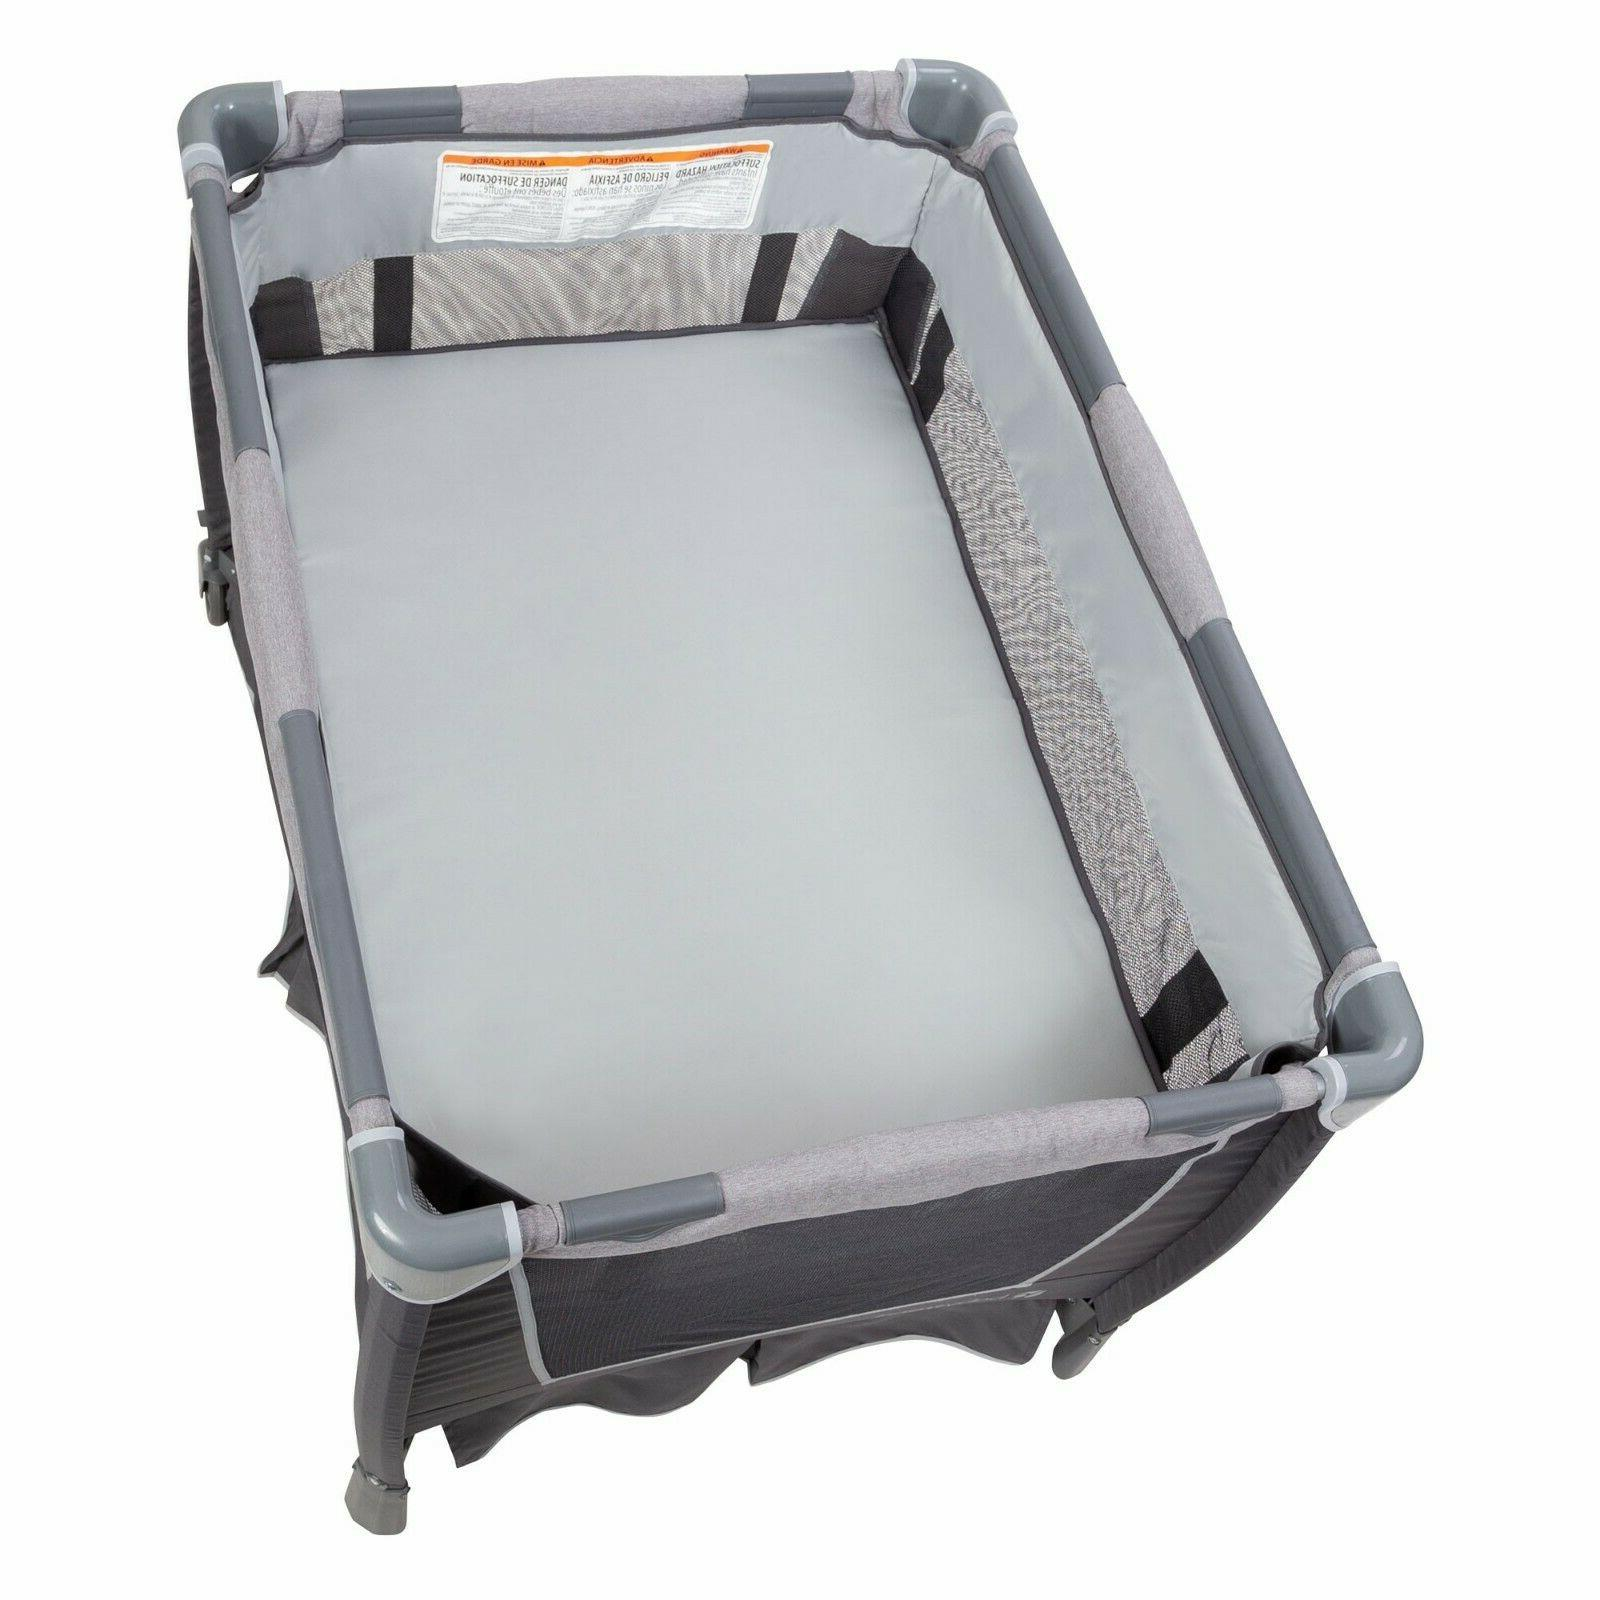 Stroller with Car Baby Travel System Crib